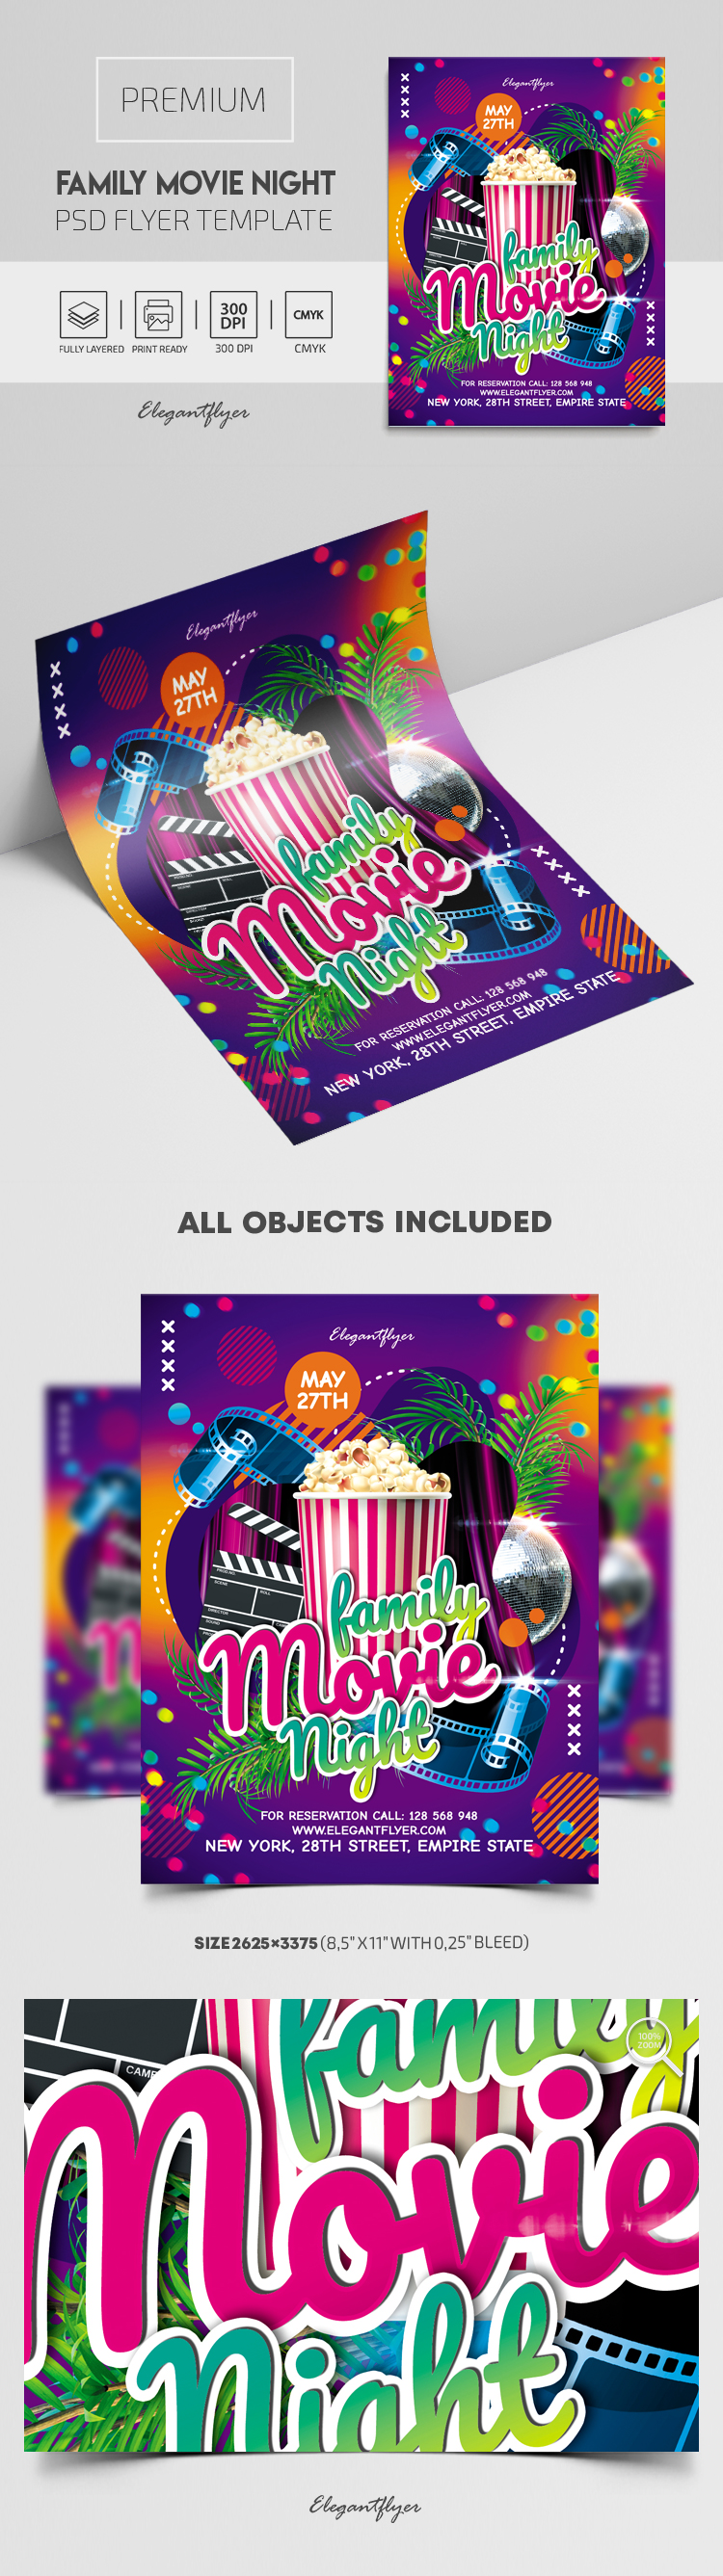 Family Movie Night – Premium PSD Flyer Template